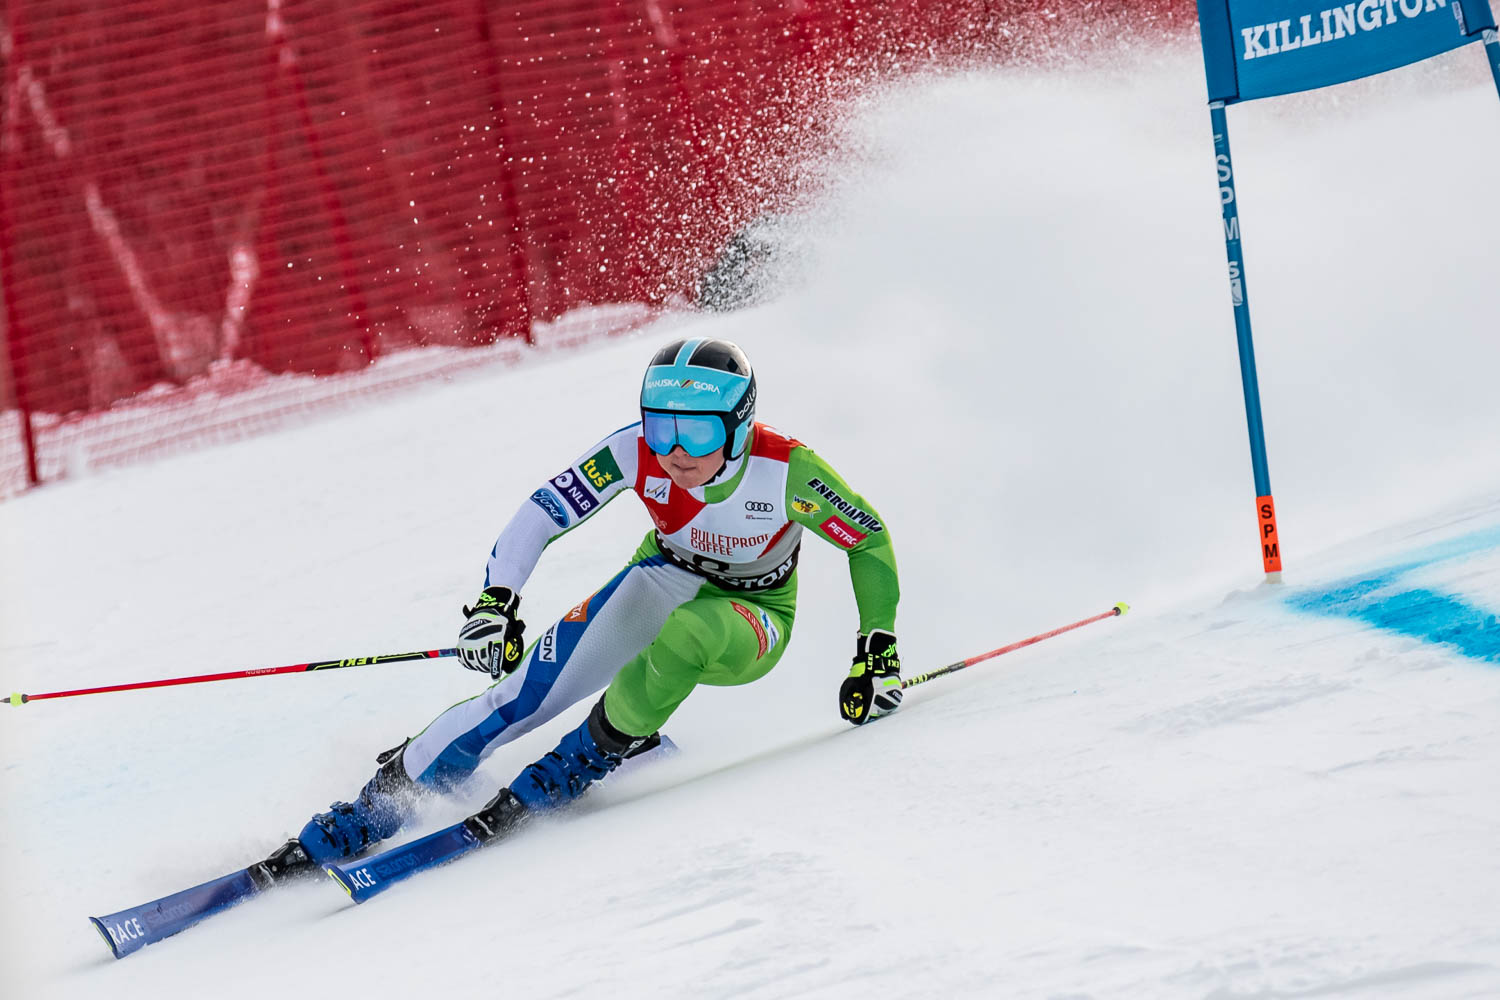 Killington World Cup 2018-504935.jpg